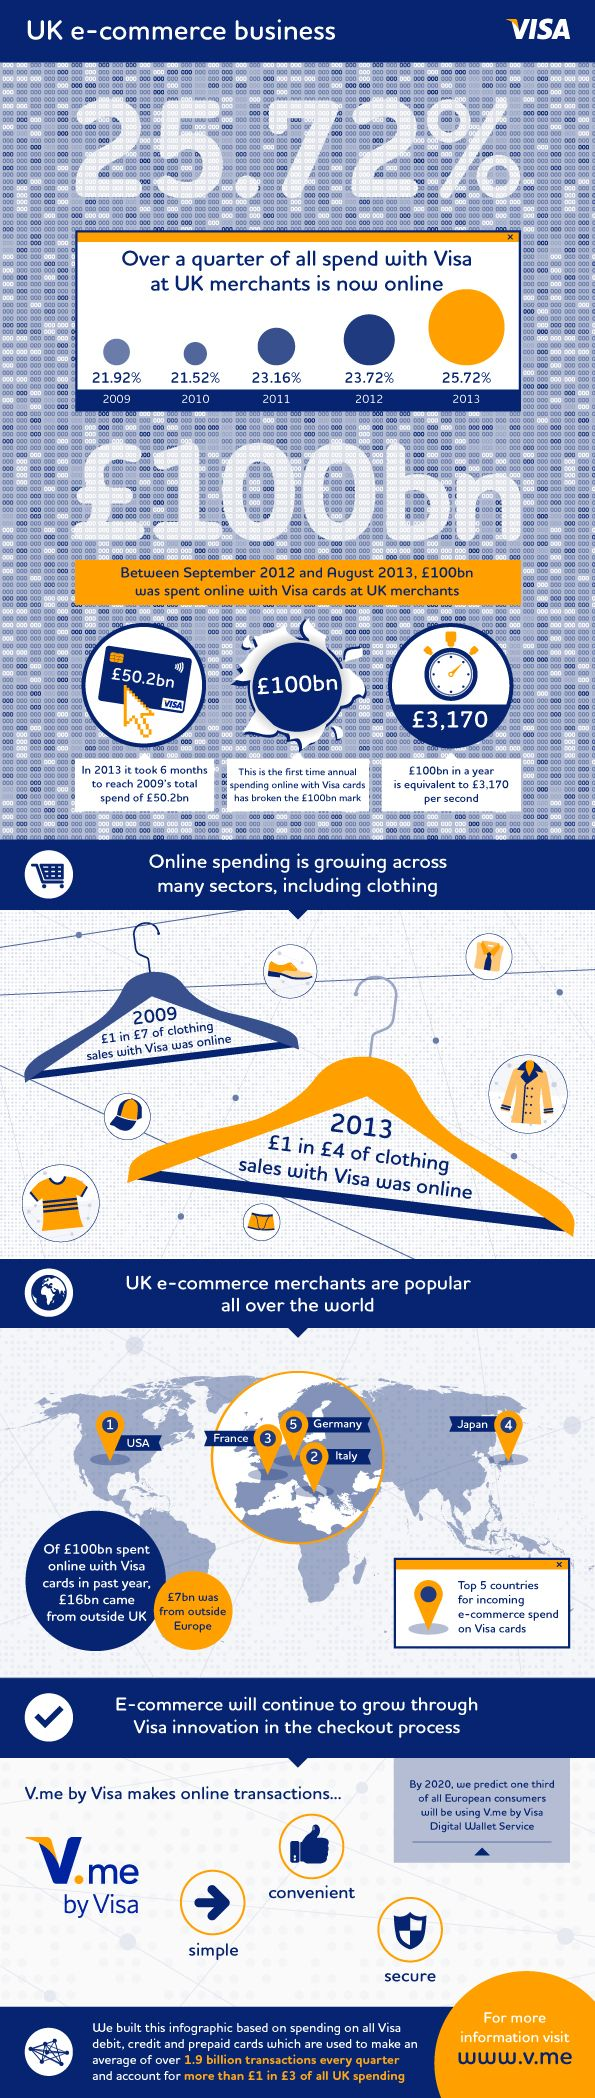 £1 in every £4 of all spend with Visa at UK merchants is now spent online. This infographic presents key stats of UK ecommerce spend, according to Visa Europe data.